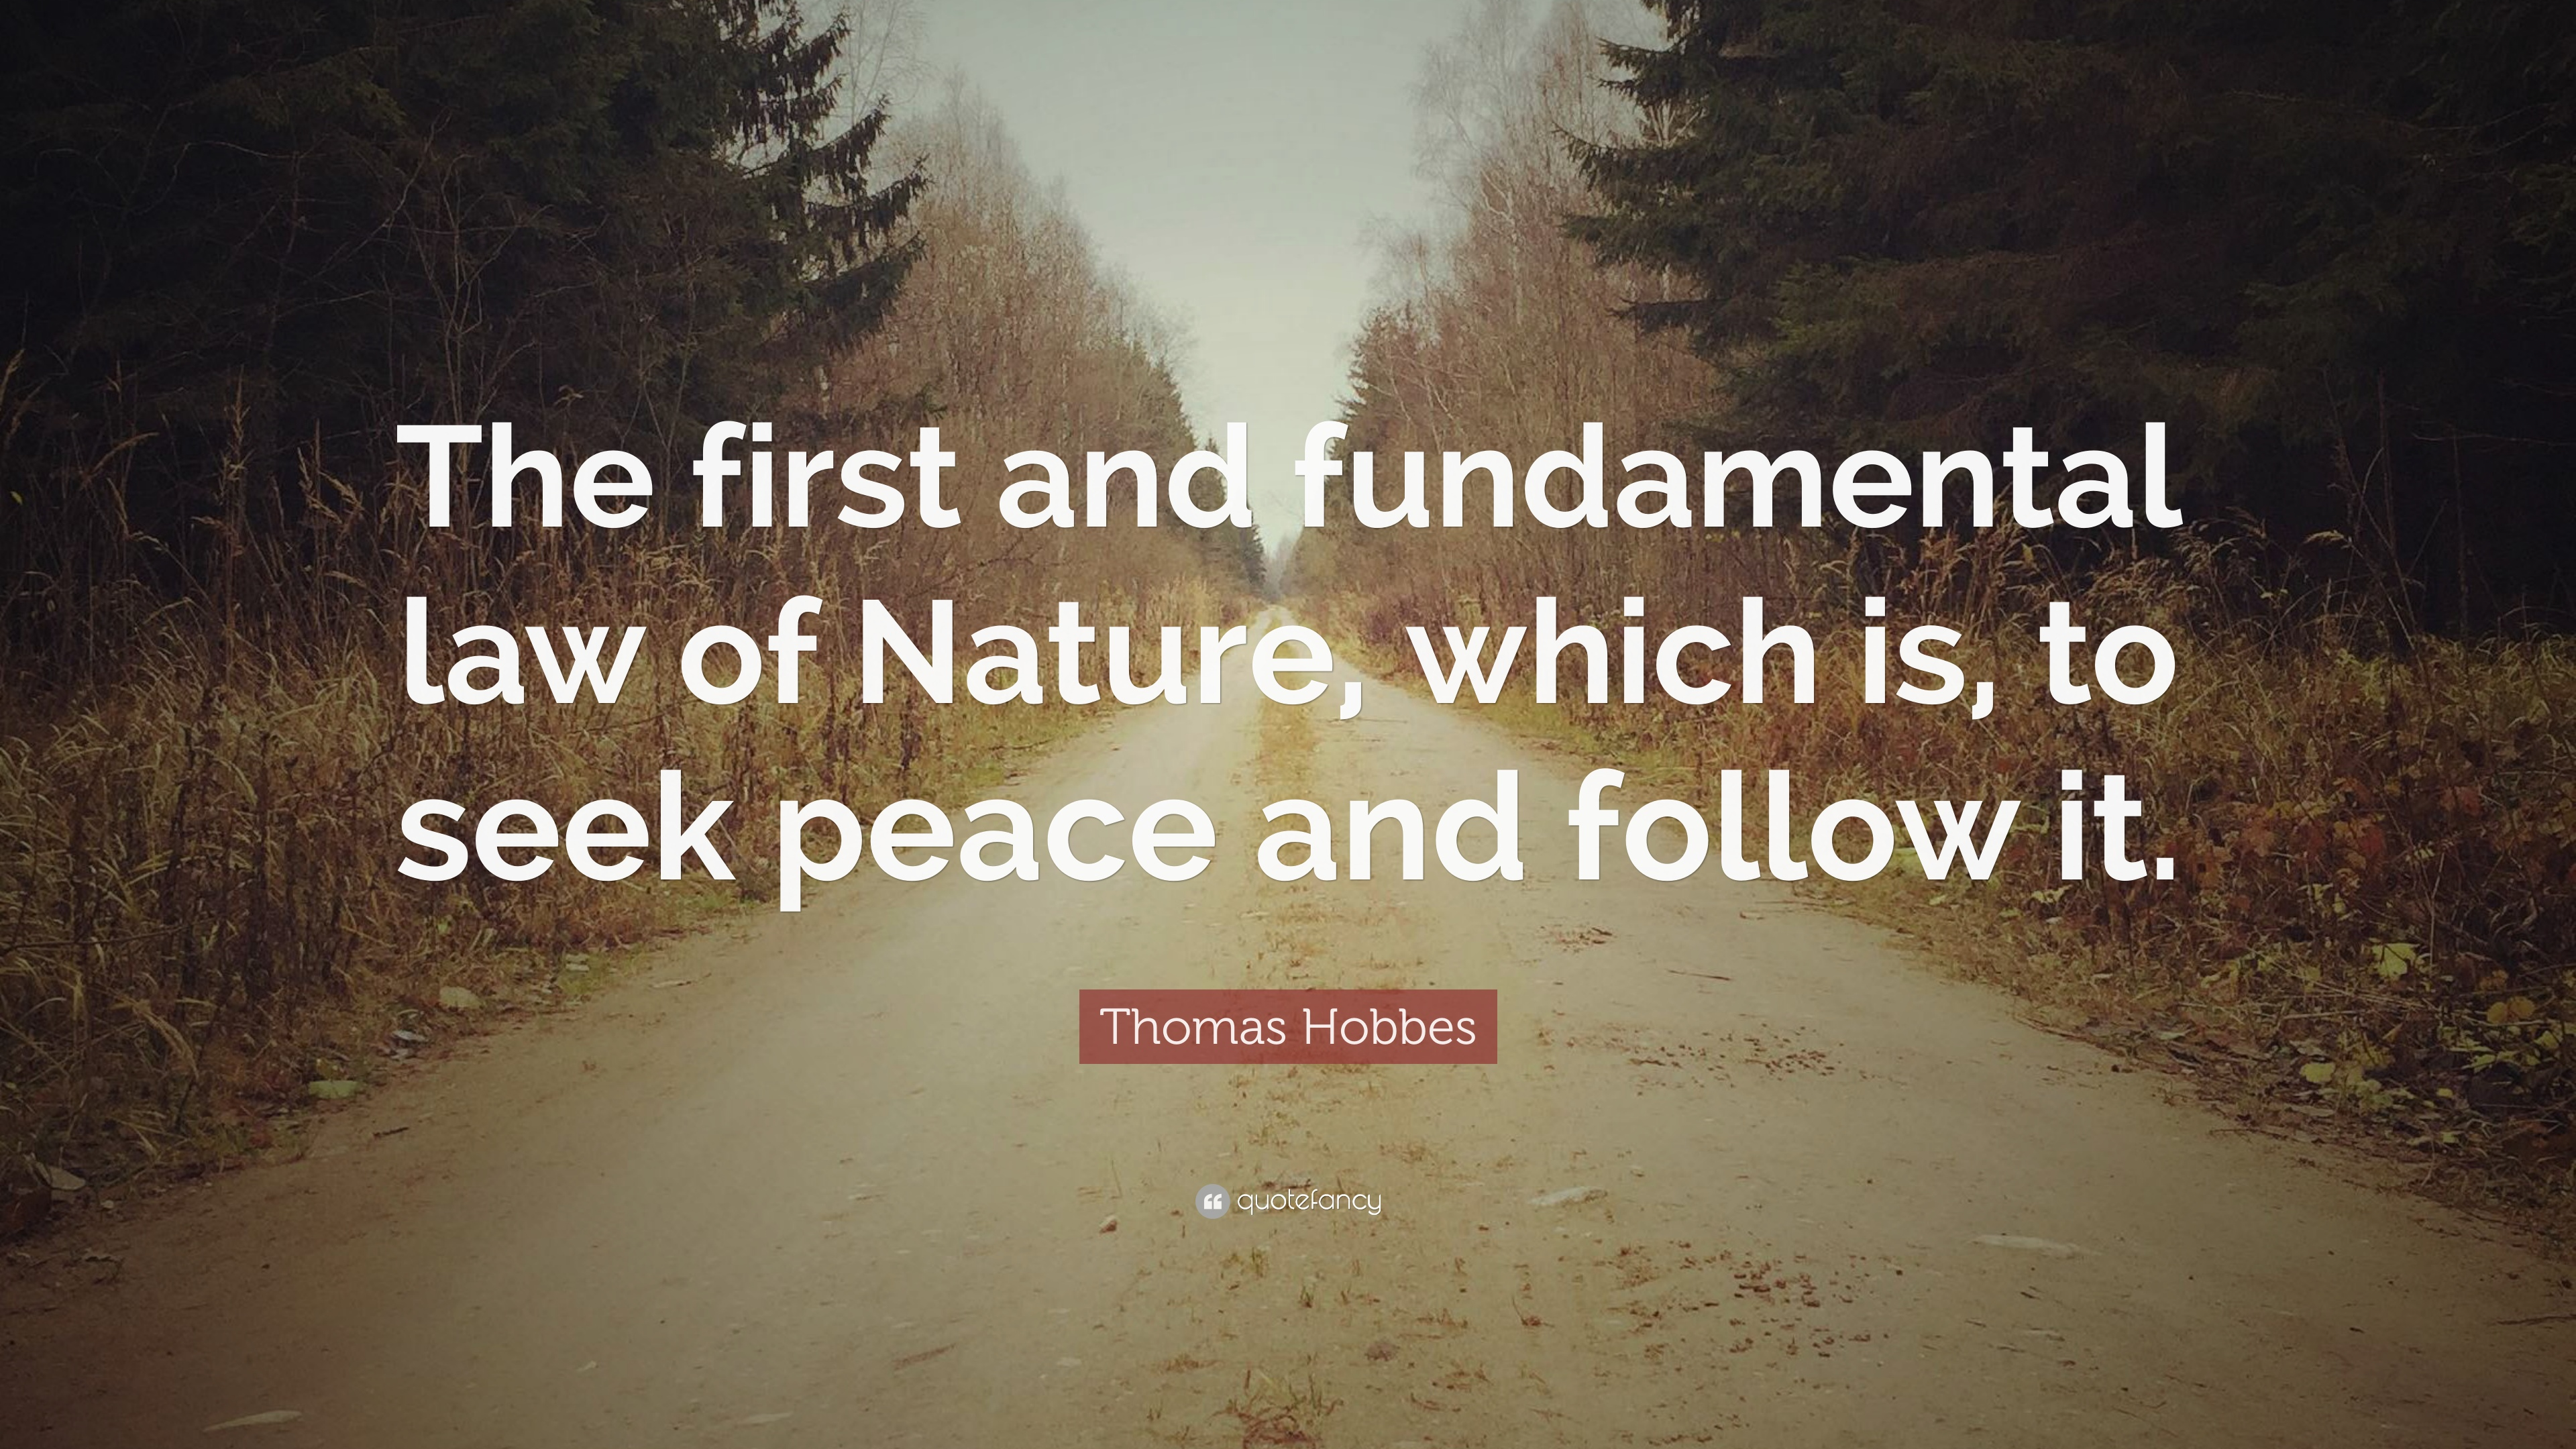 an analysis of the laws of nature by thomas hobbes